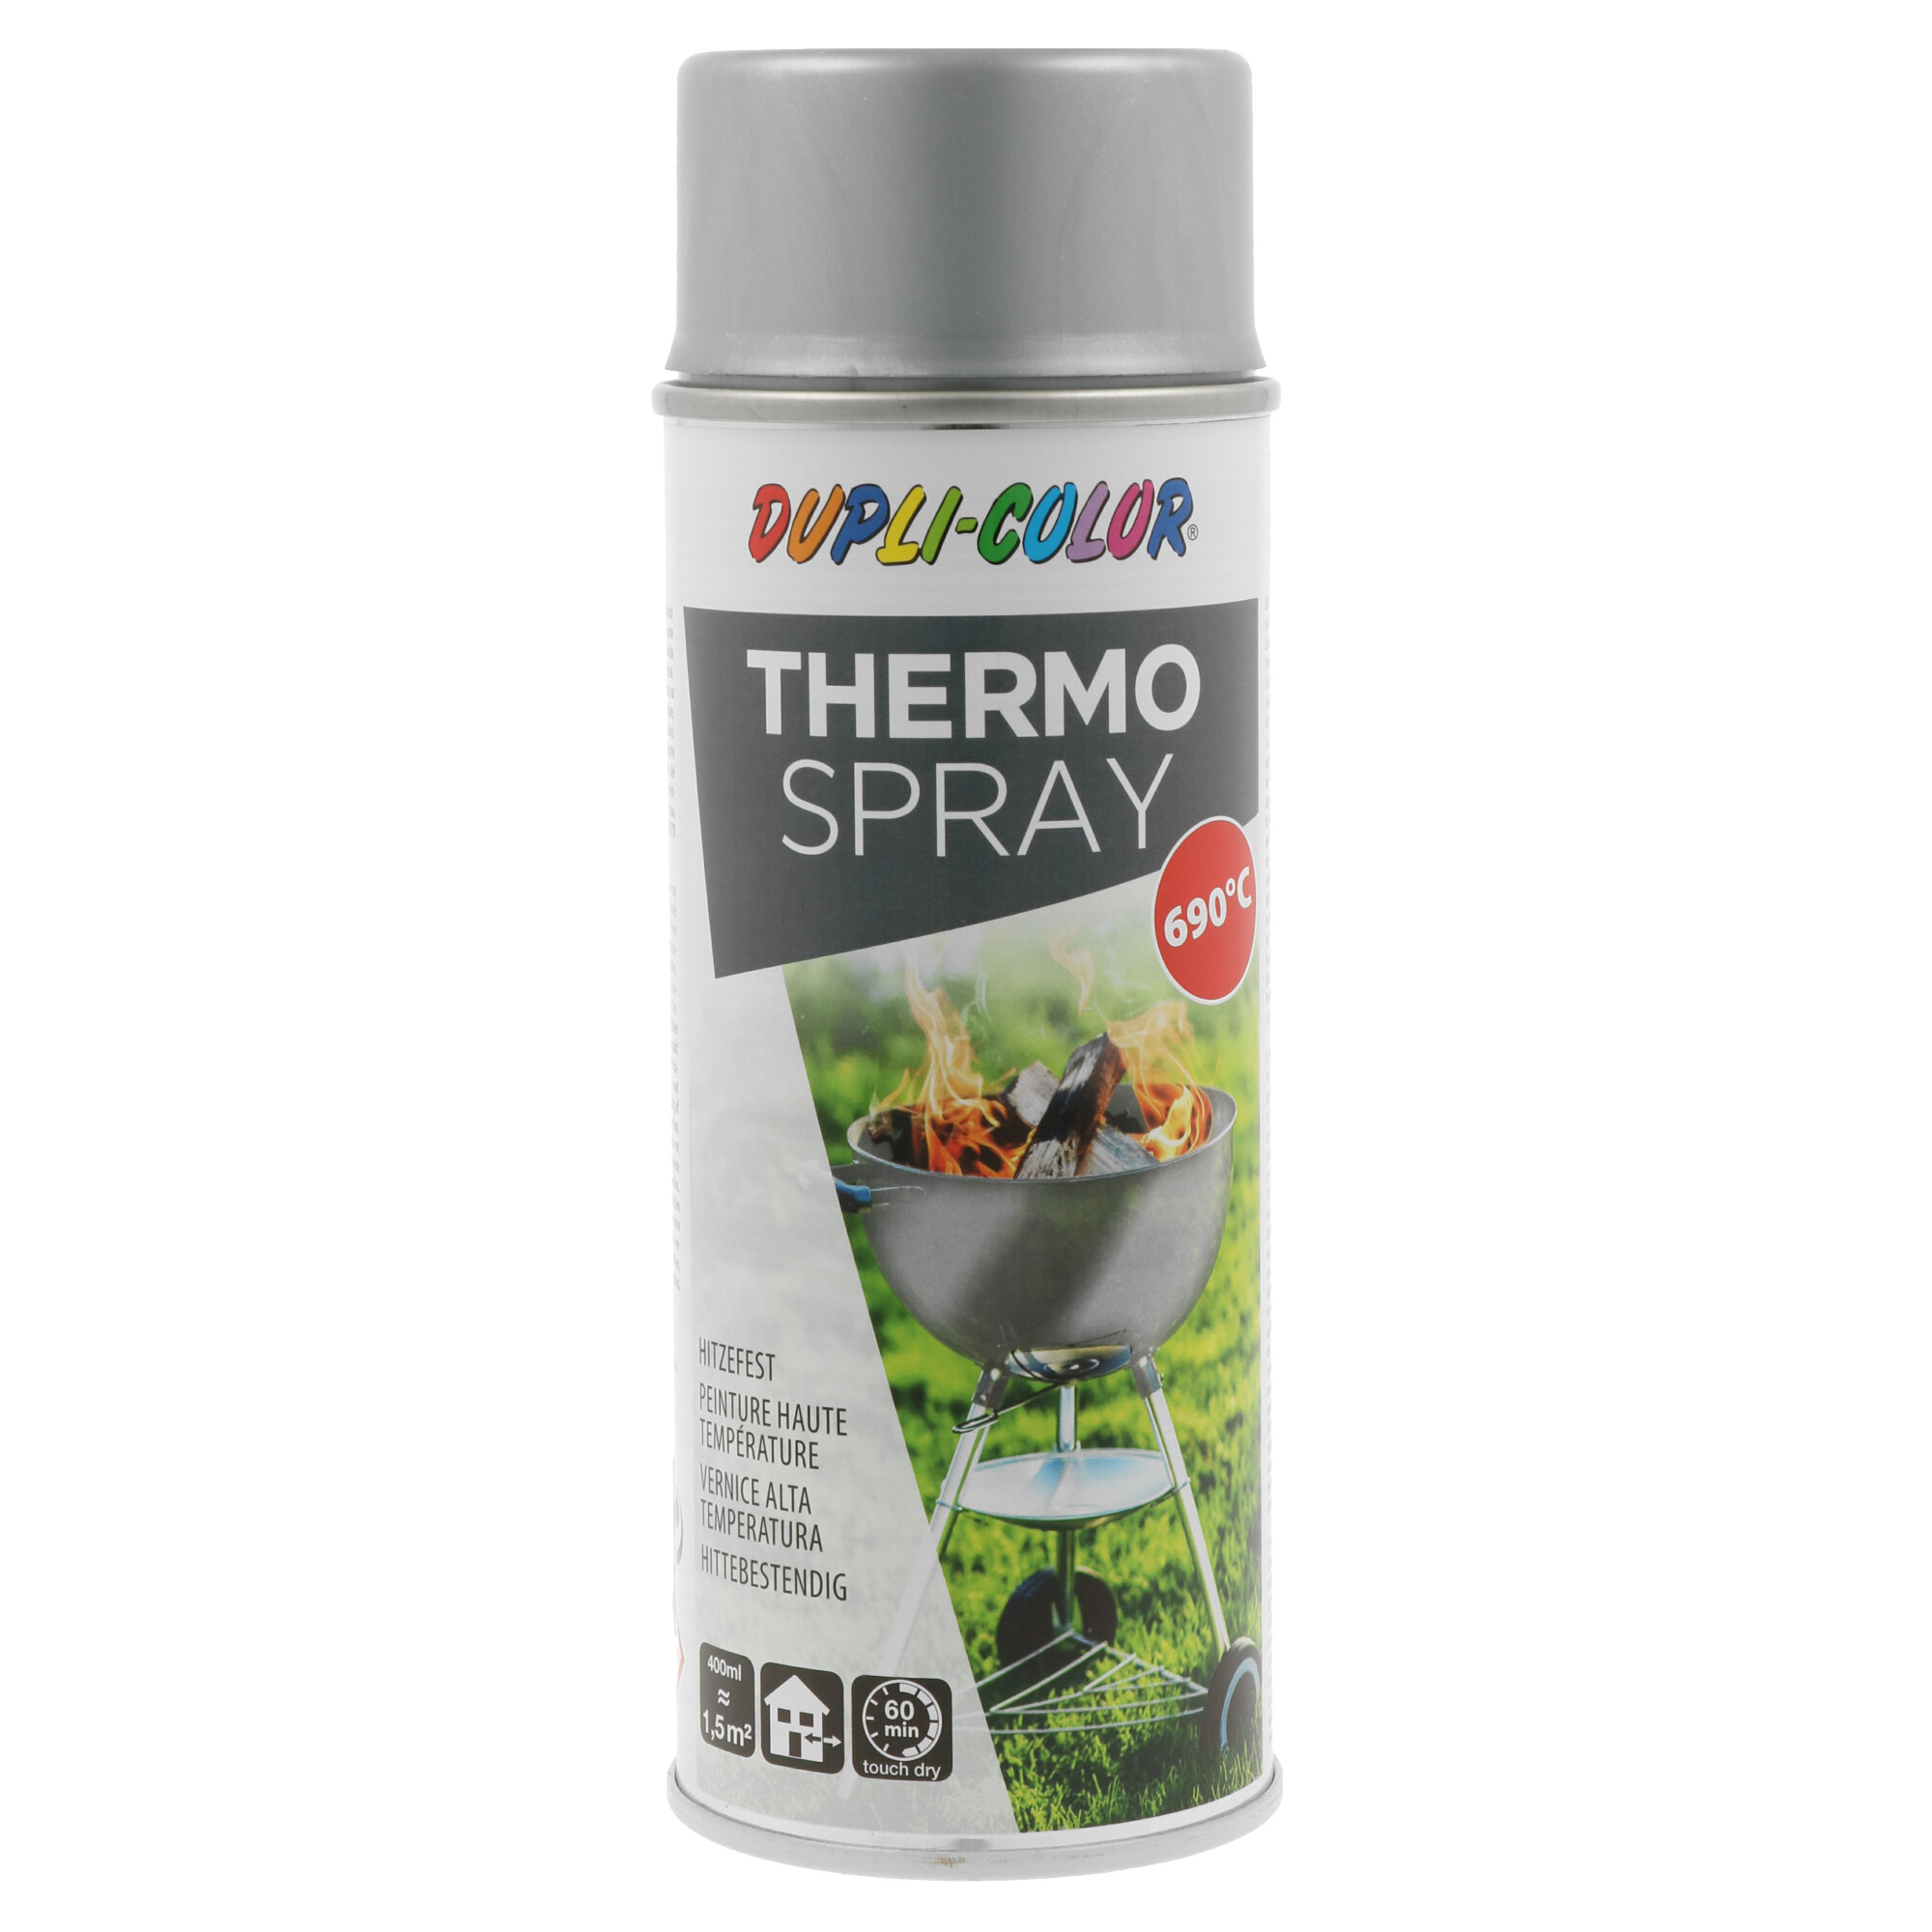 Spray Alta Temperatura Prata Mate 690°C 400 ml